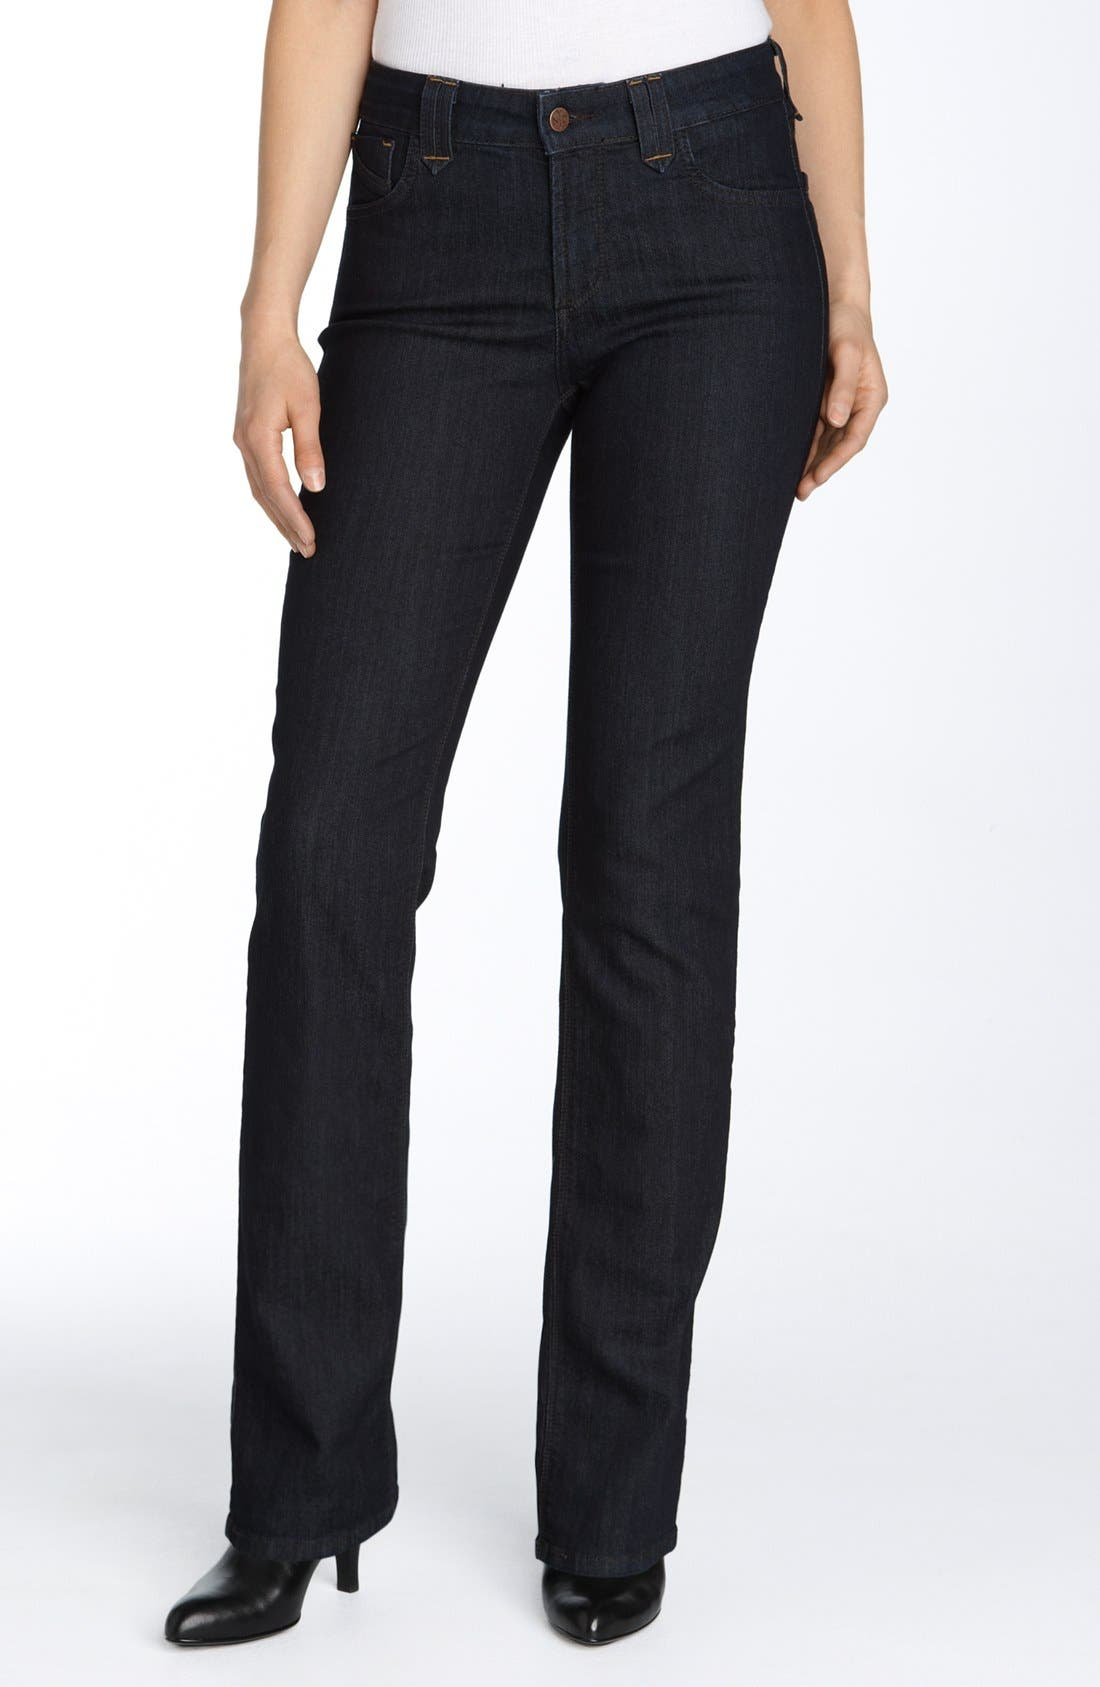 Alternate Image 1 Selected - NYDJ 'Marilyn' Stretch Straight Leg Jeans (Petite)